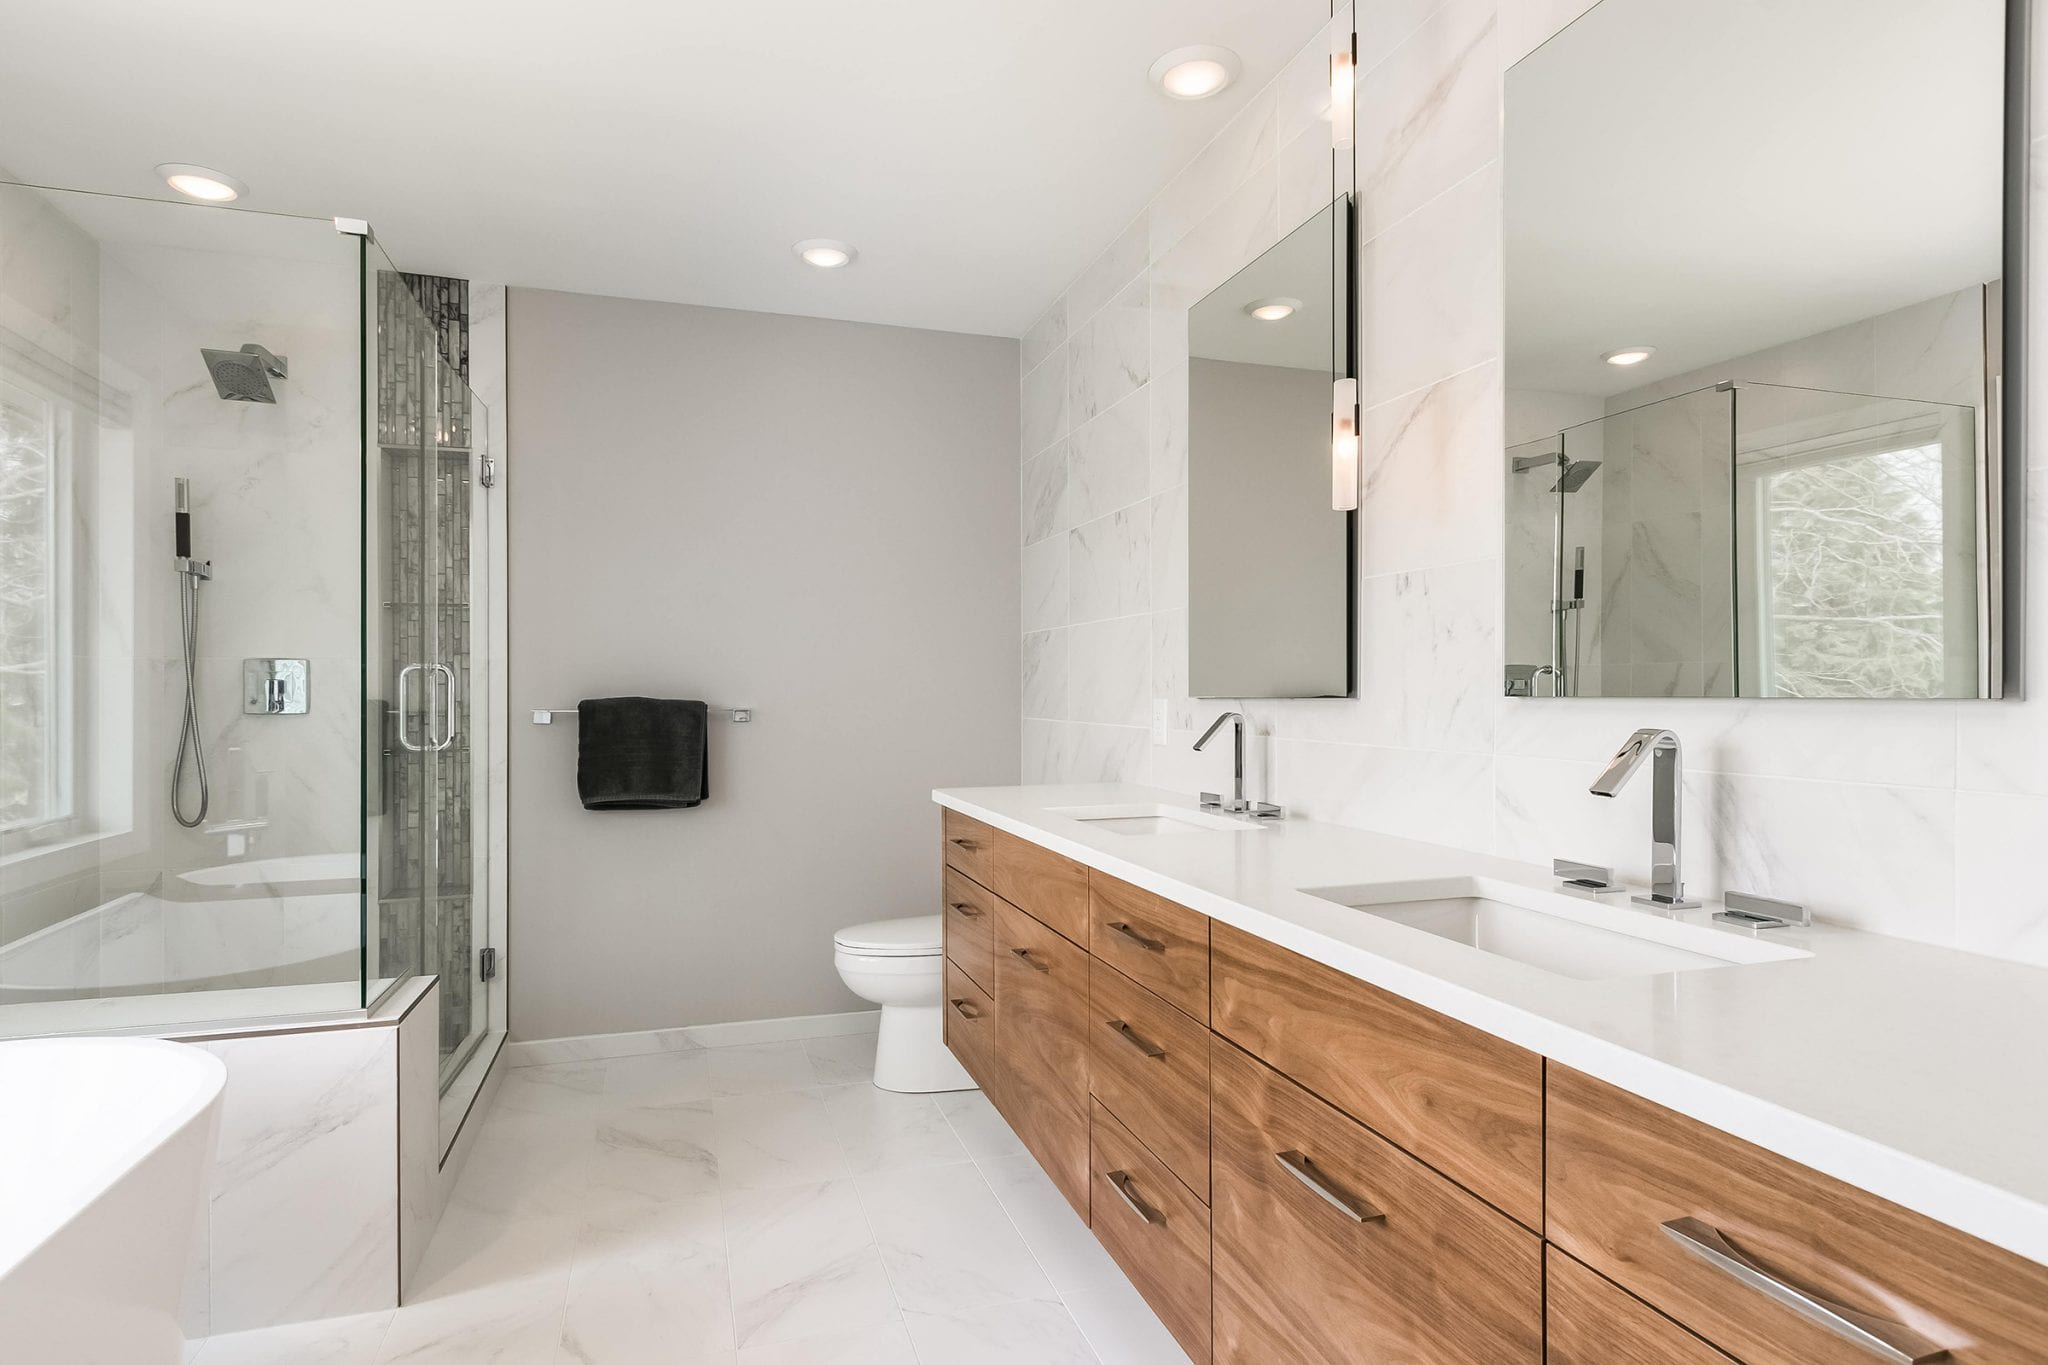 bathroom remodel | white finishes and wood cabinets